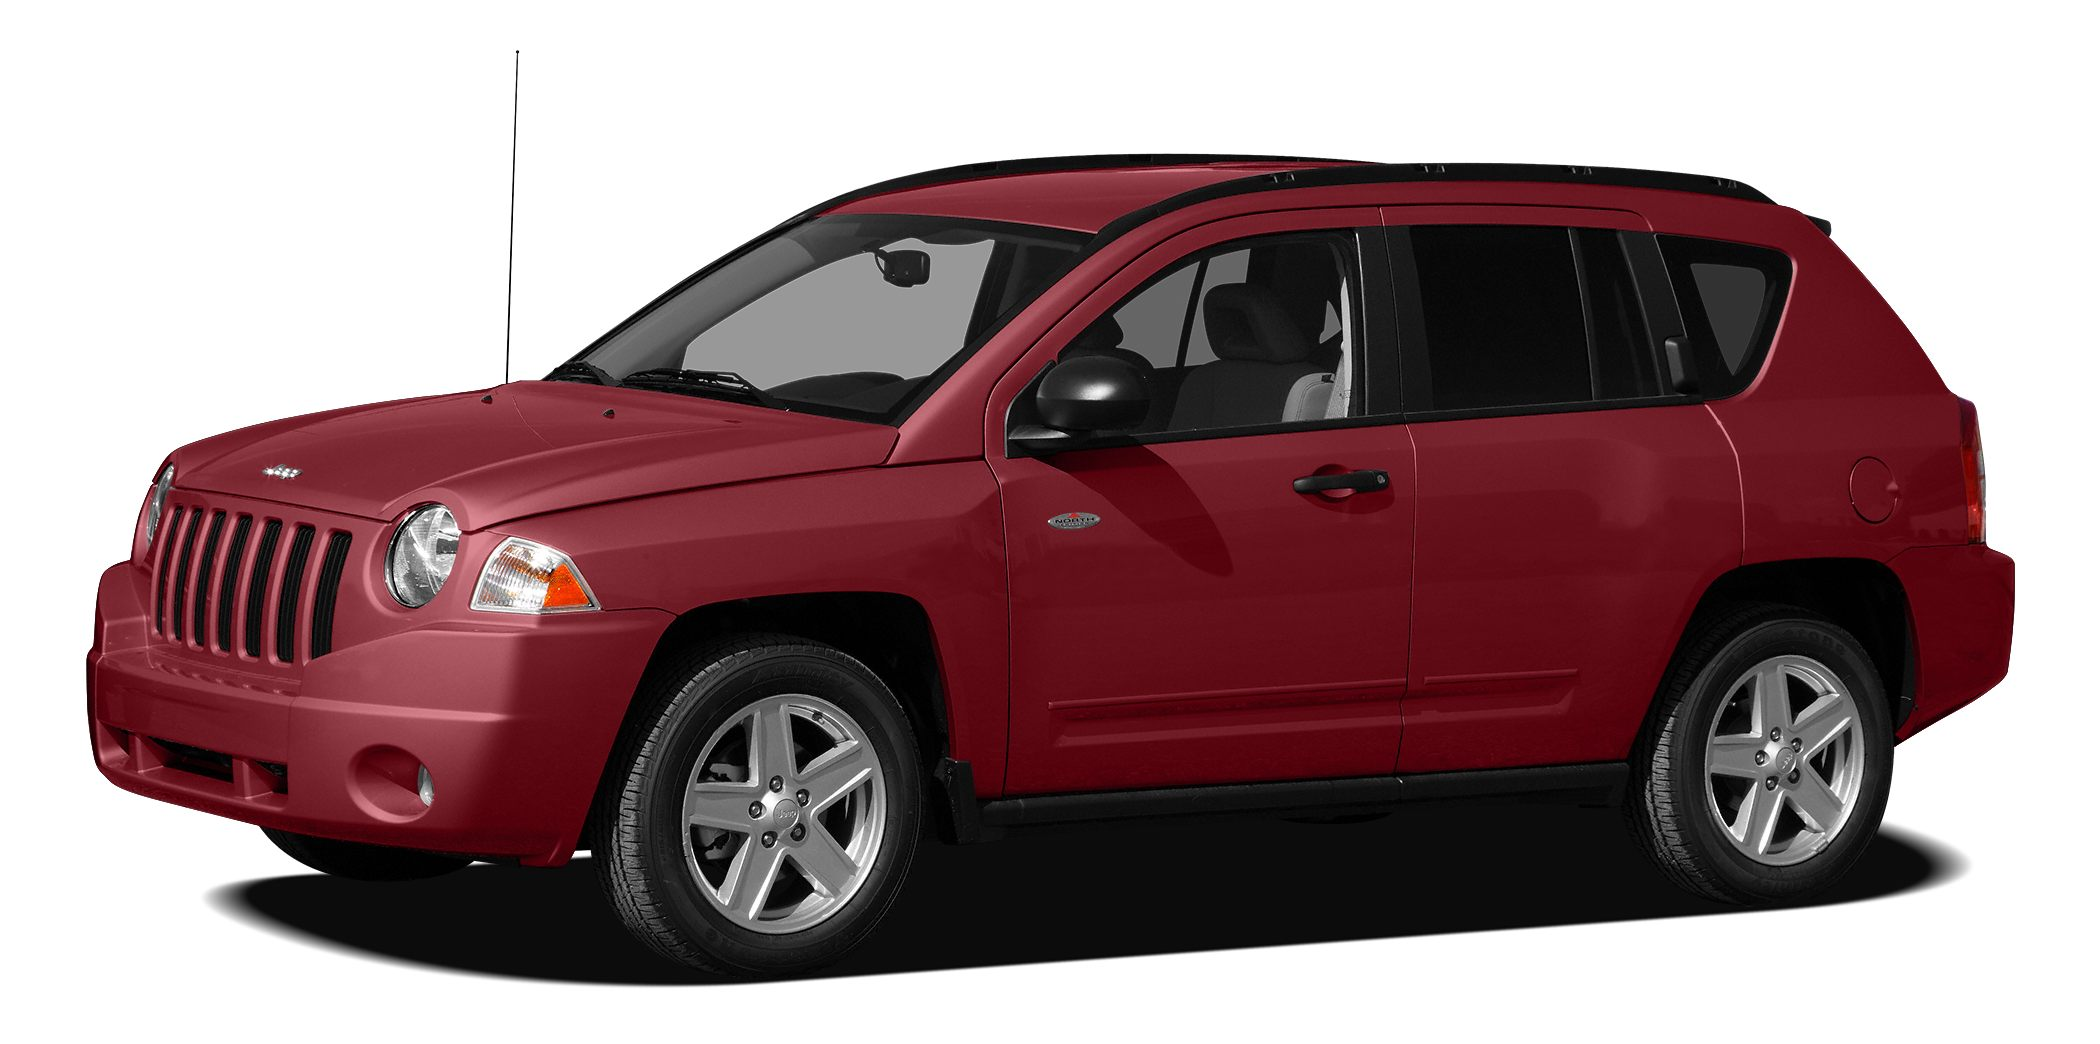 2010 Jeep Compass Sport ONLY 63801 Miles EPA 27 MPG Hwy23 MPG City Latitude trim Heated Seats